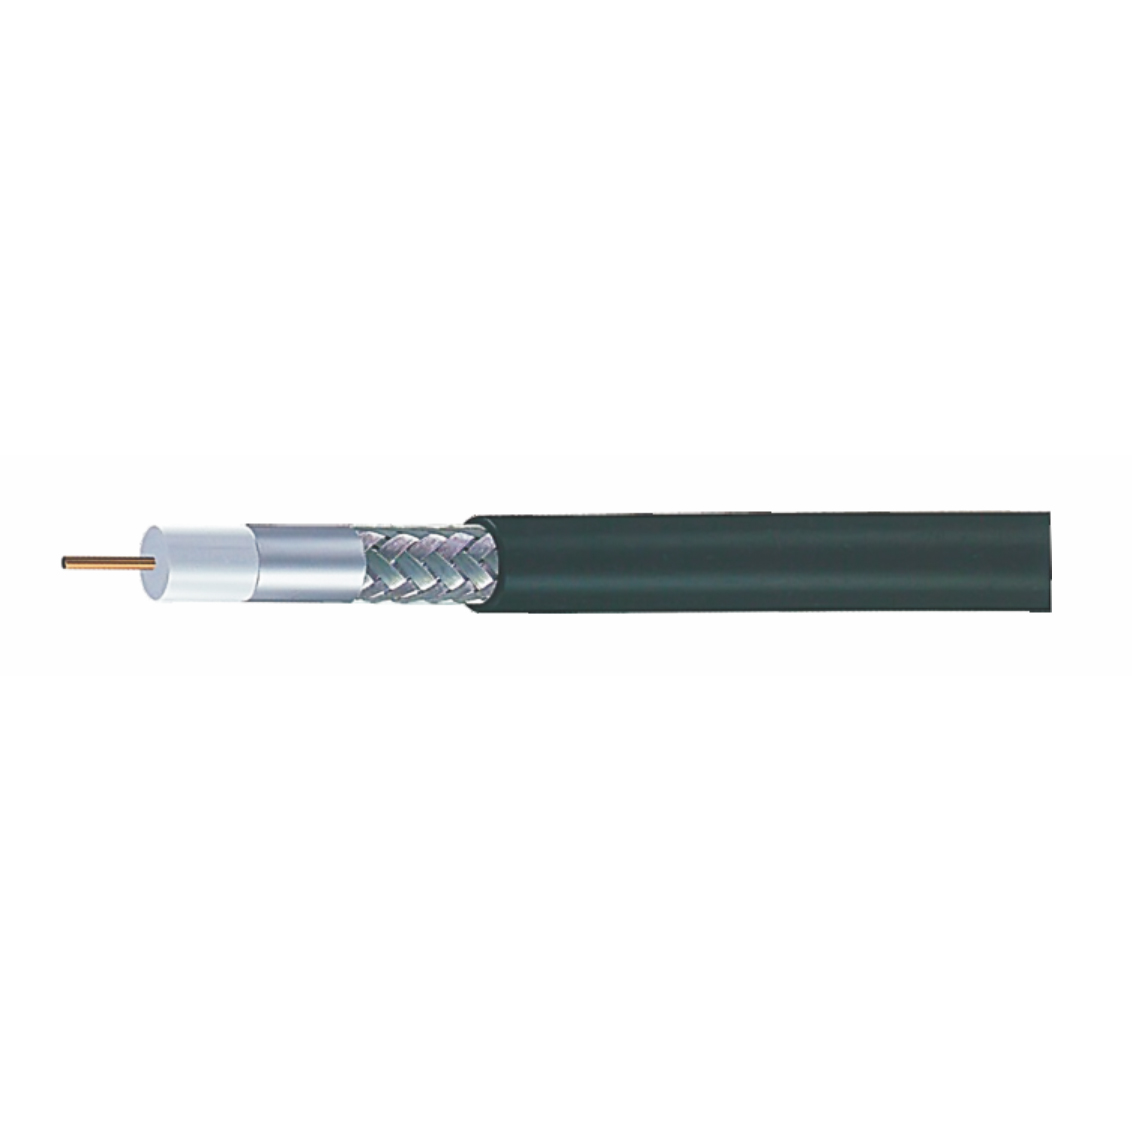 LMR100-200 Coaxial Cable